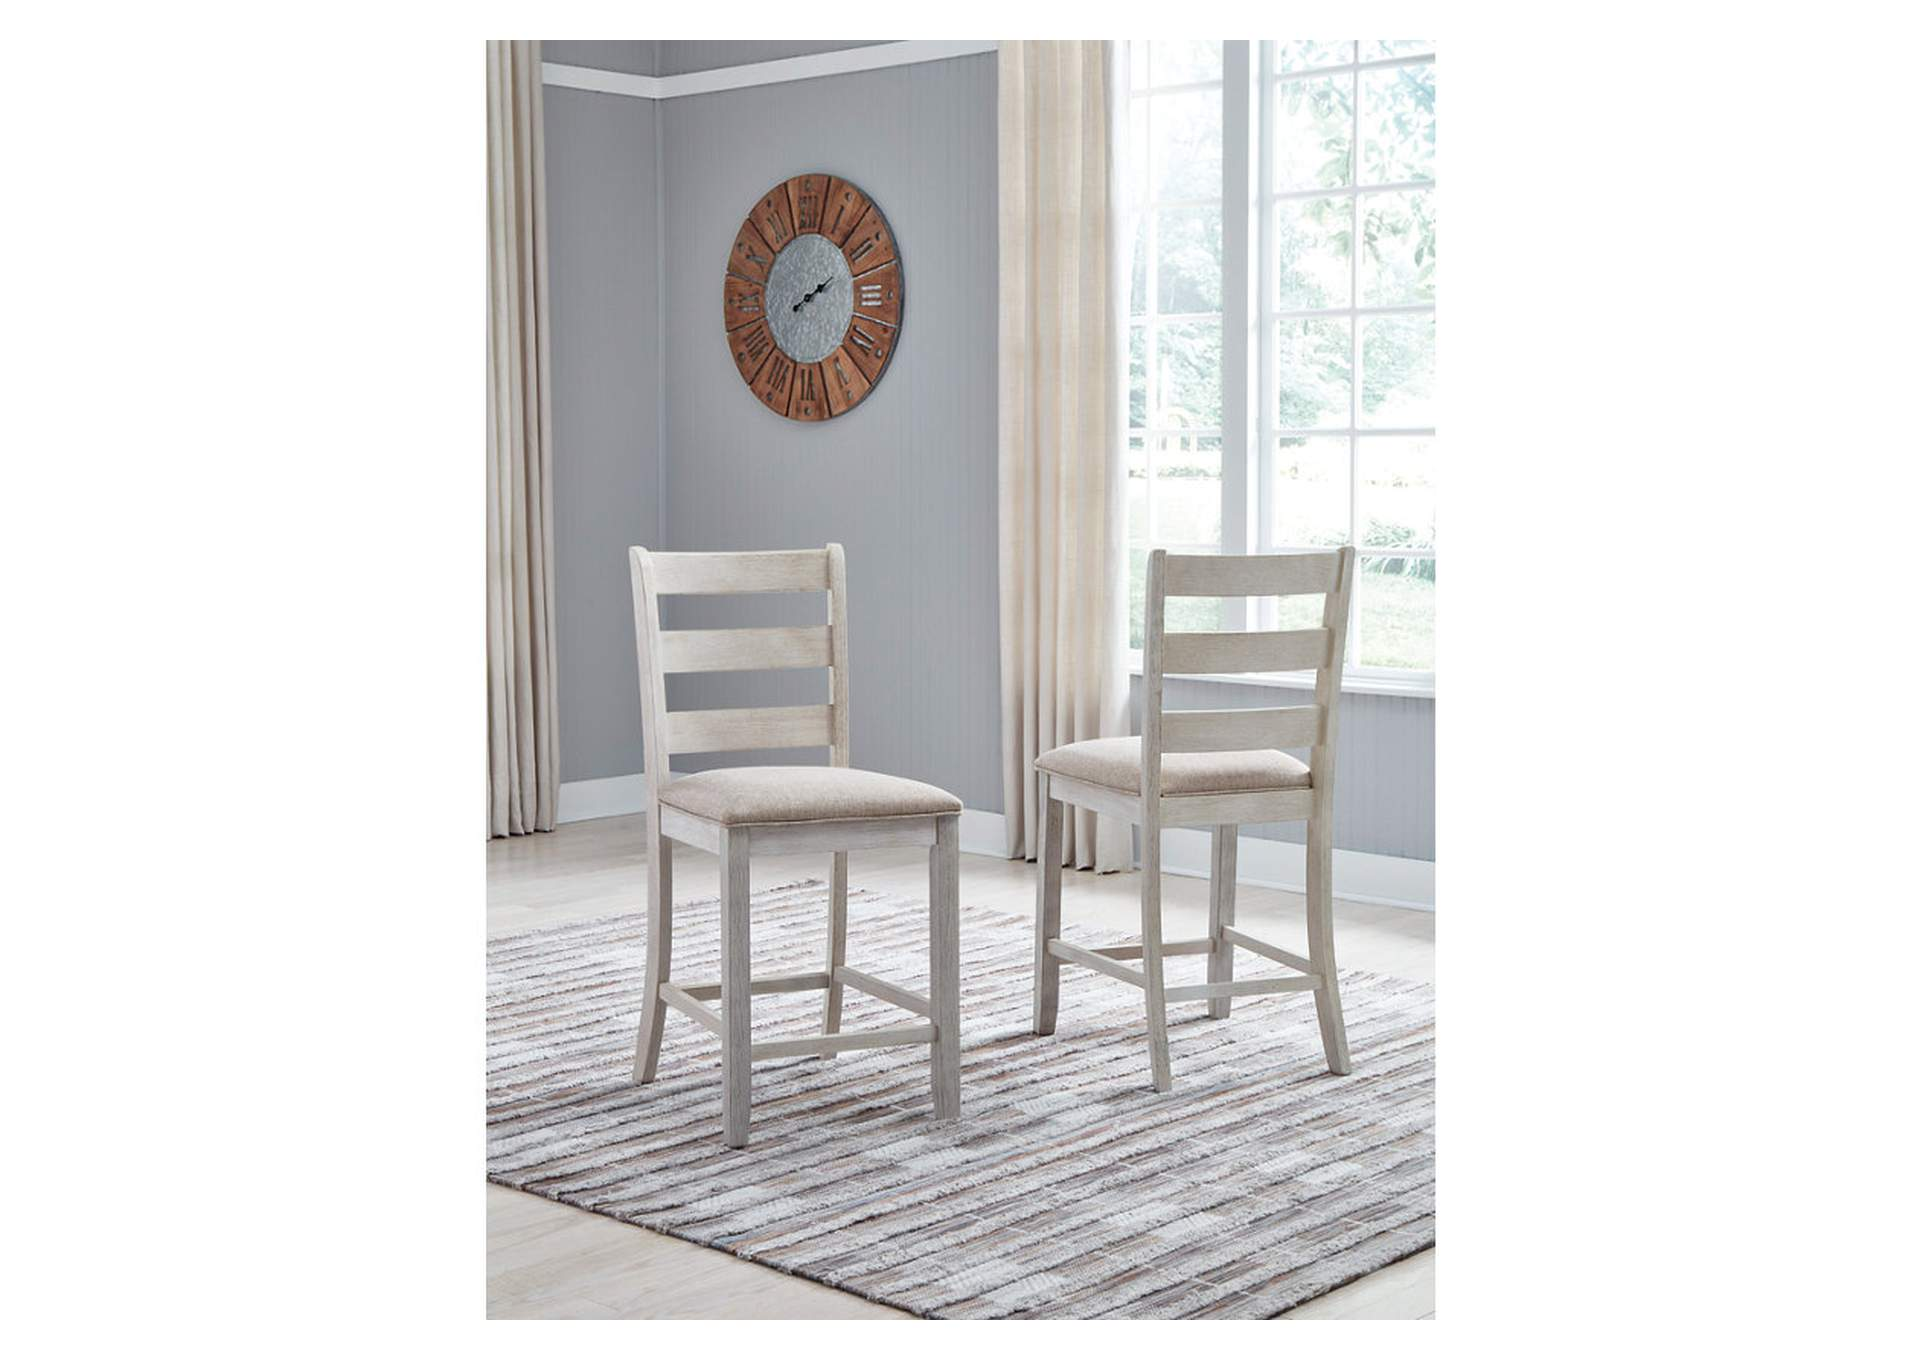 Skempton Rectangular Counter Dining Set W/ 2 Chairs,Signature Design By Ashley